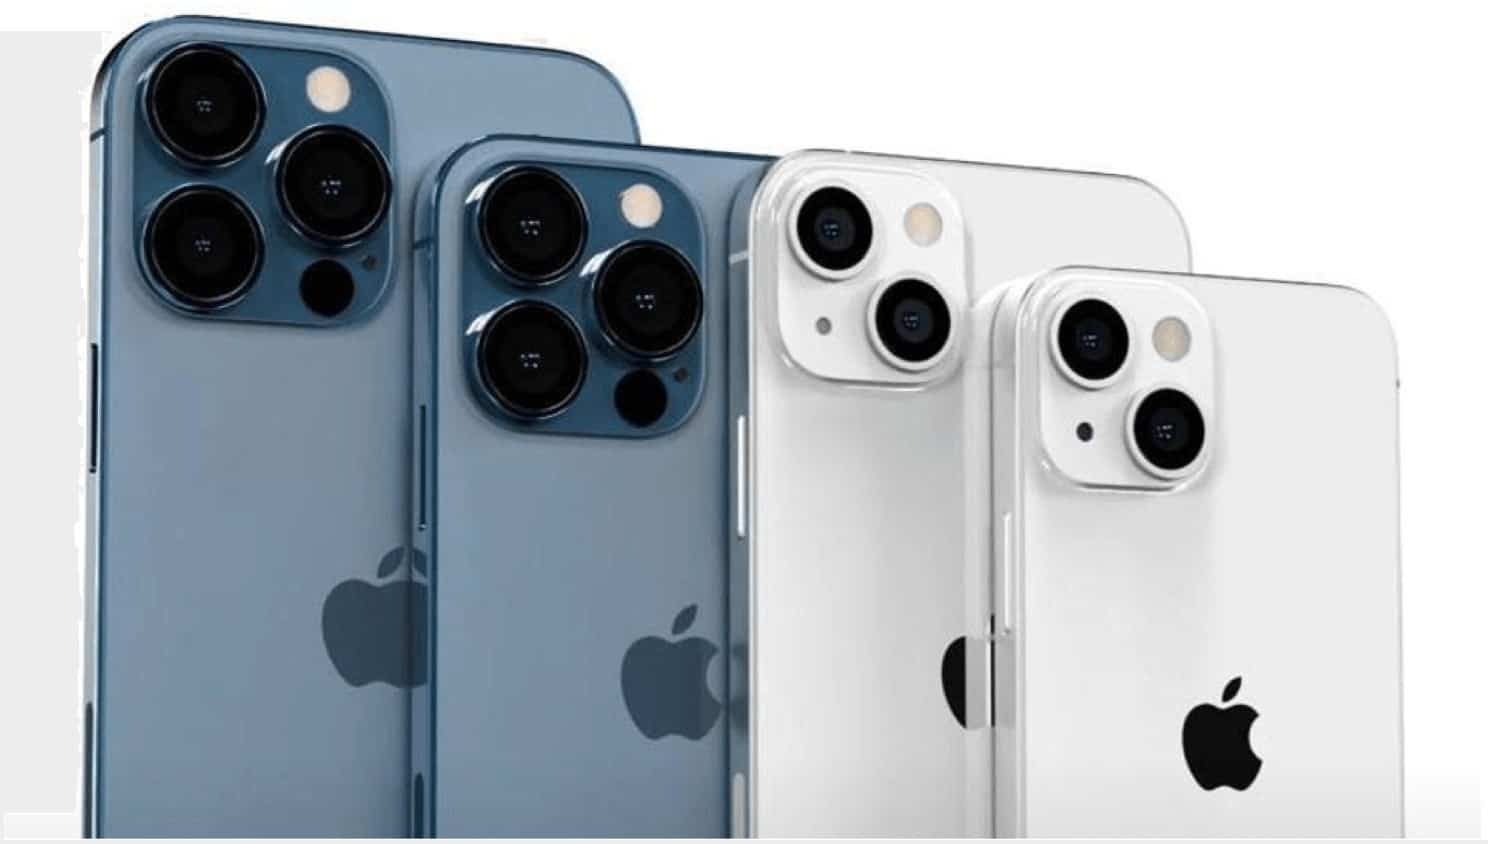 iPhone history: iPhone 13 series